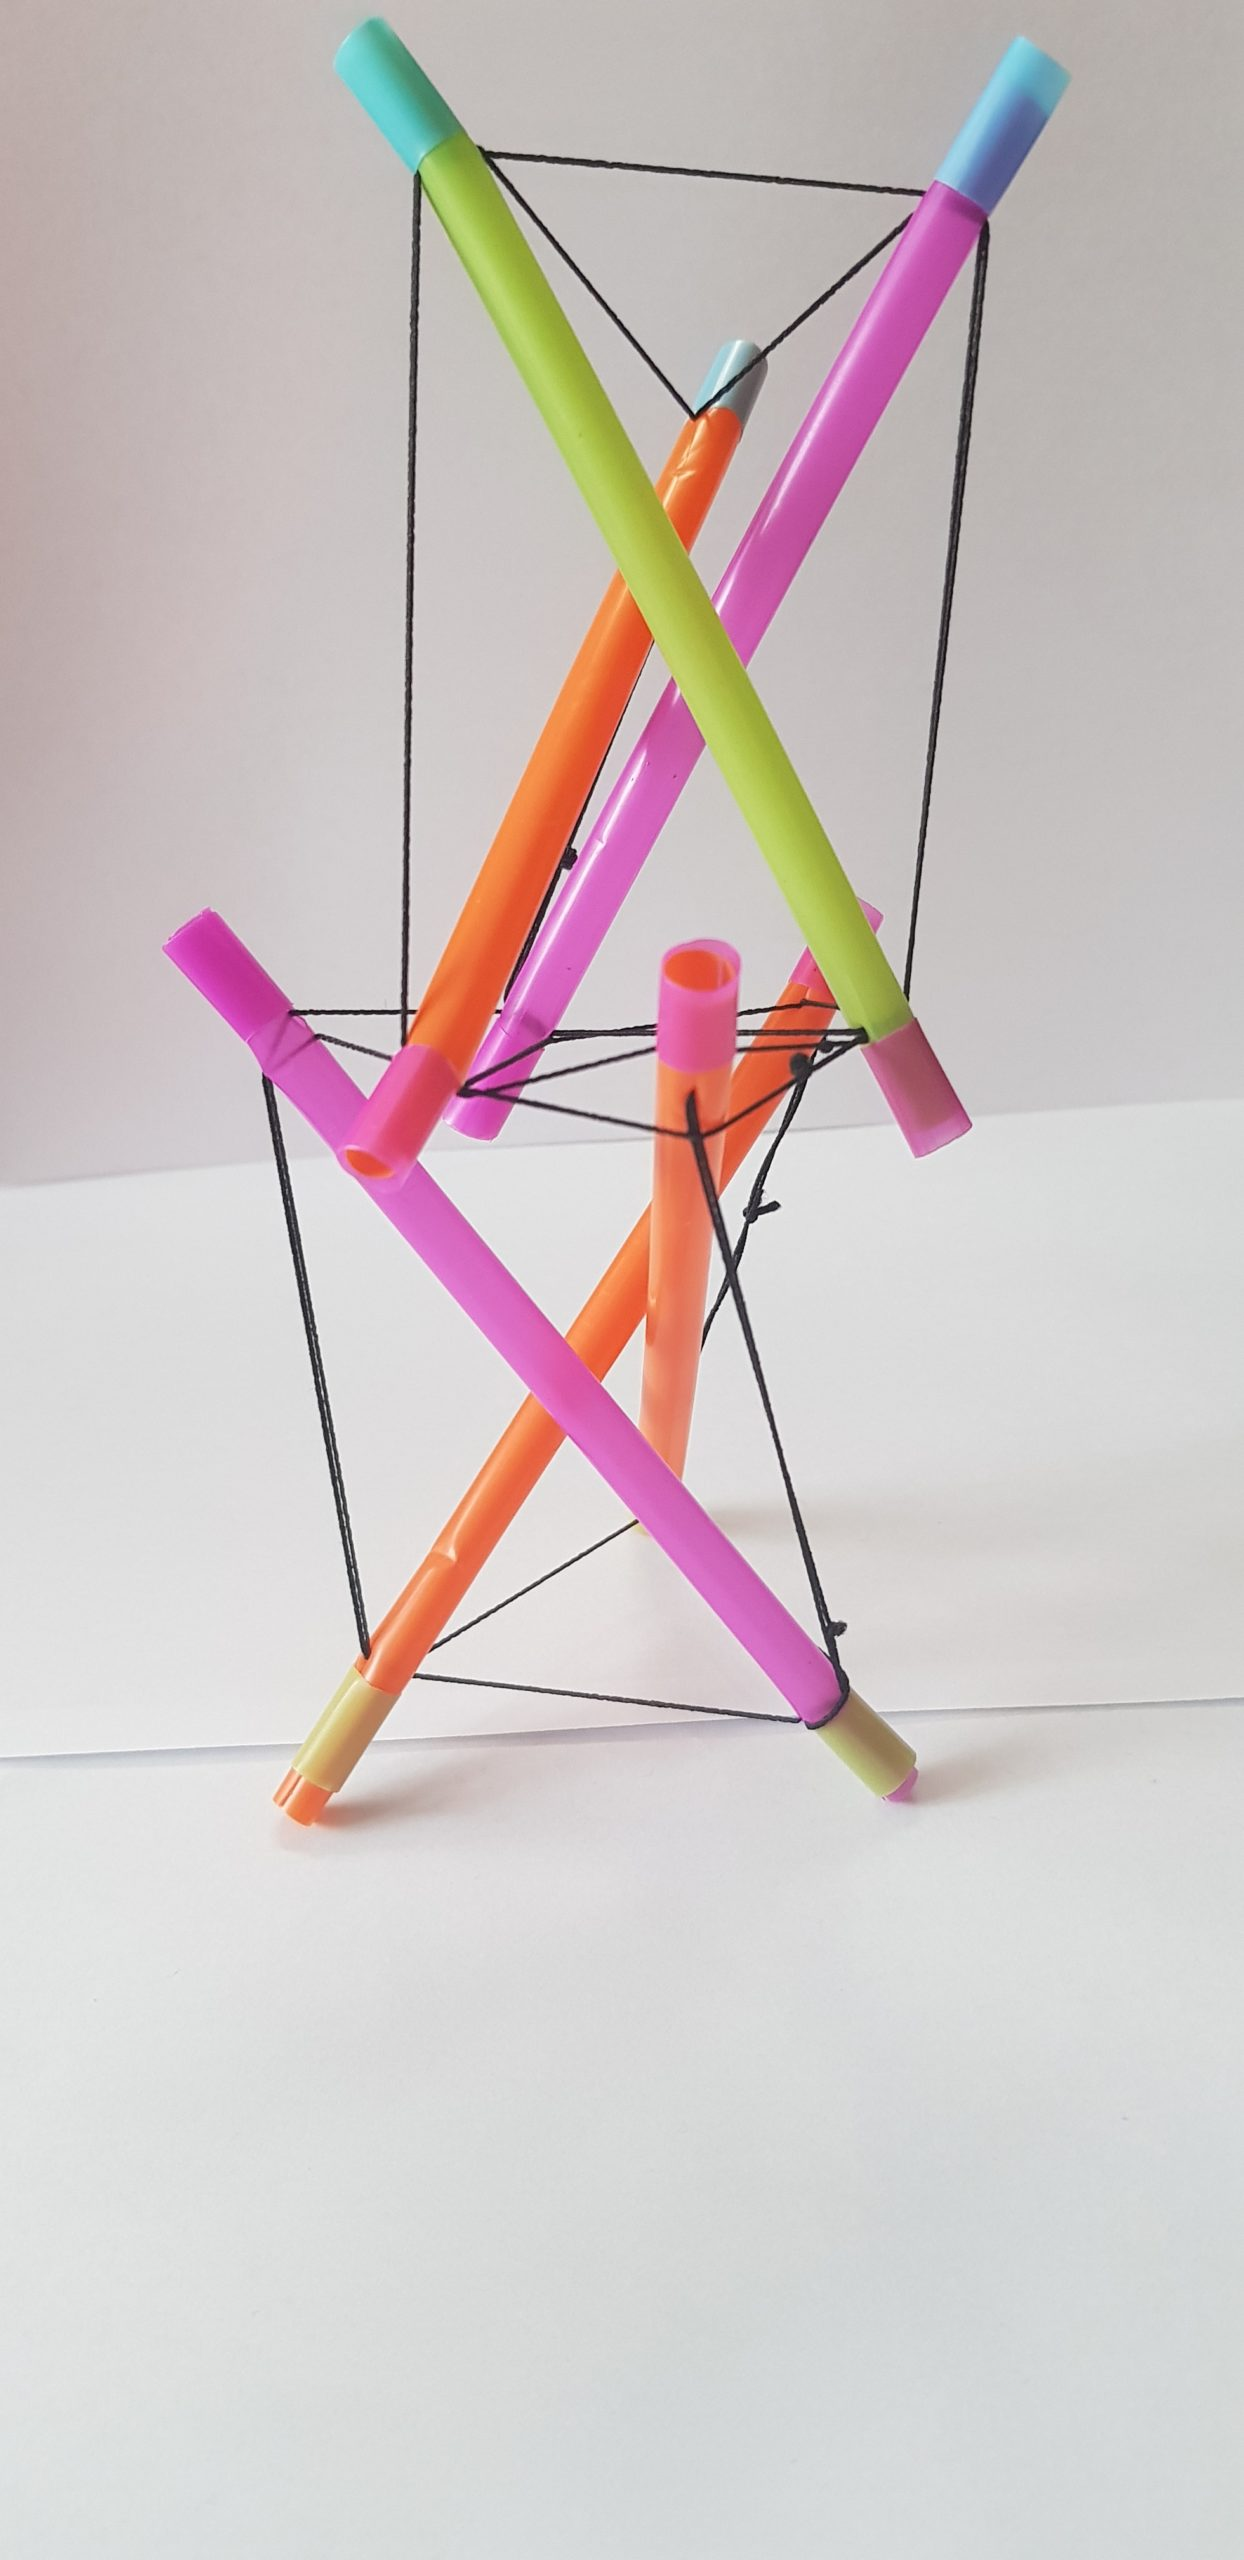 Make a Tensegrity Tower